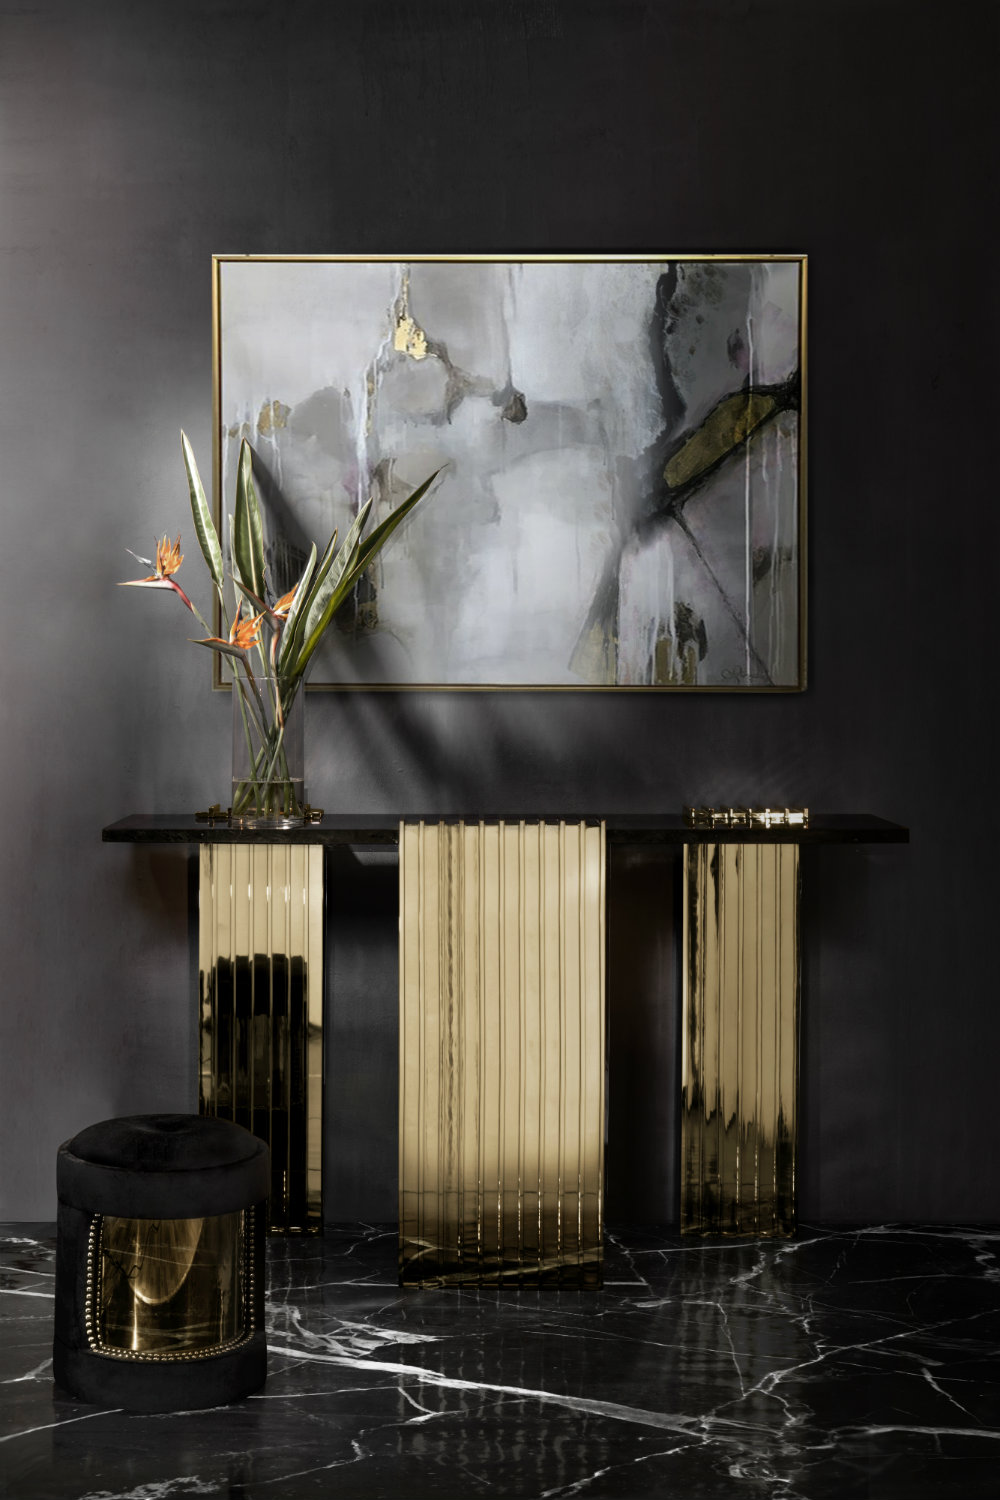 Luxury Designs To See At AD Design Show 2019 wall lamp Gold wall lamps to create a sophisticated decoration Luxury Designs To See At AD Design Show 2019 01 wall lamp Gold wall lamps to create a sophisticated decoration Luxury Designs To See At AD Design Show 2019 01